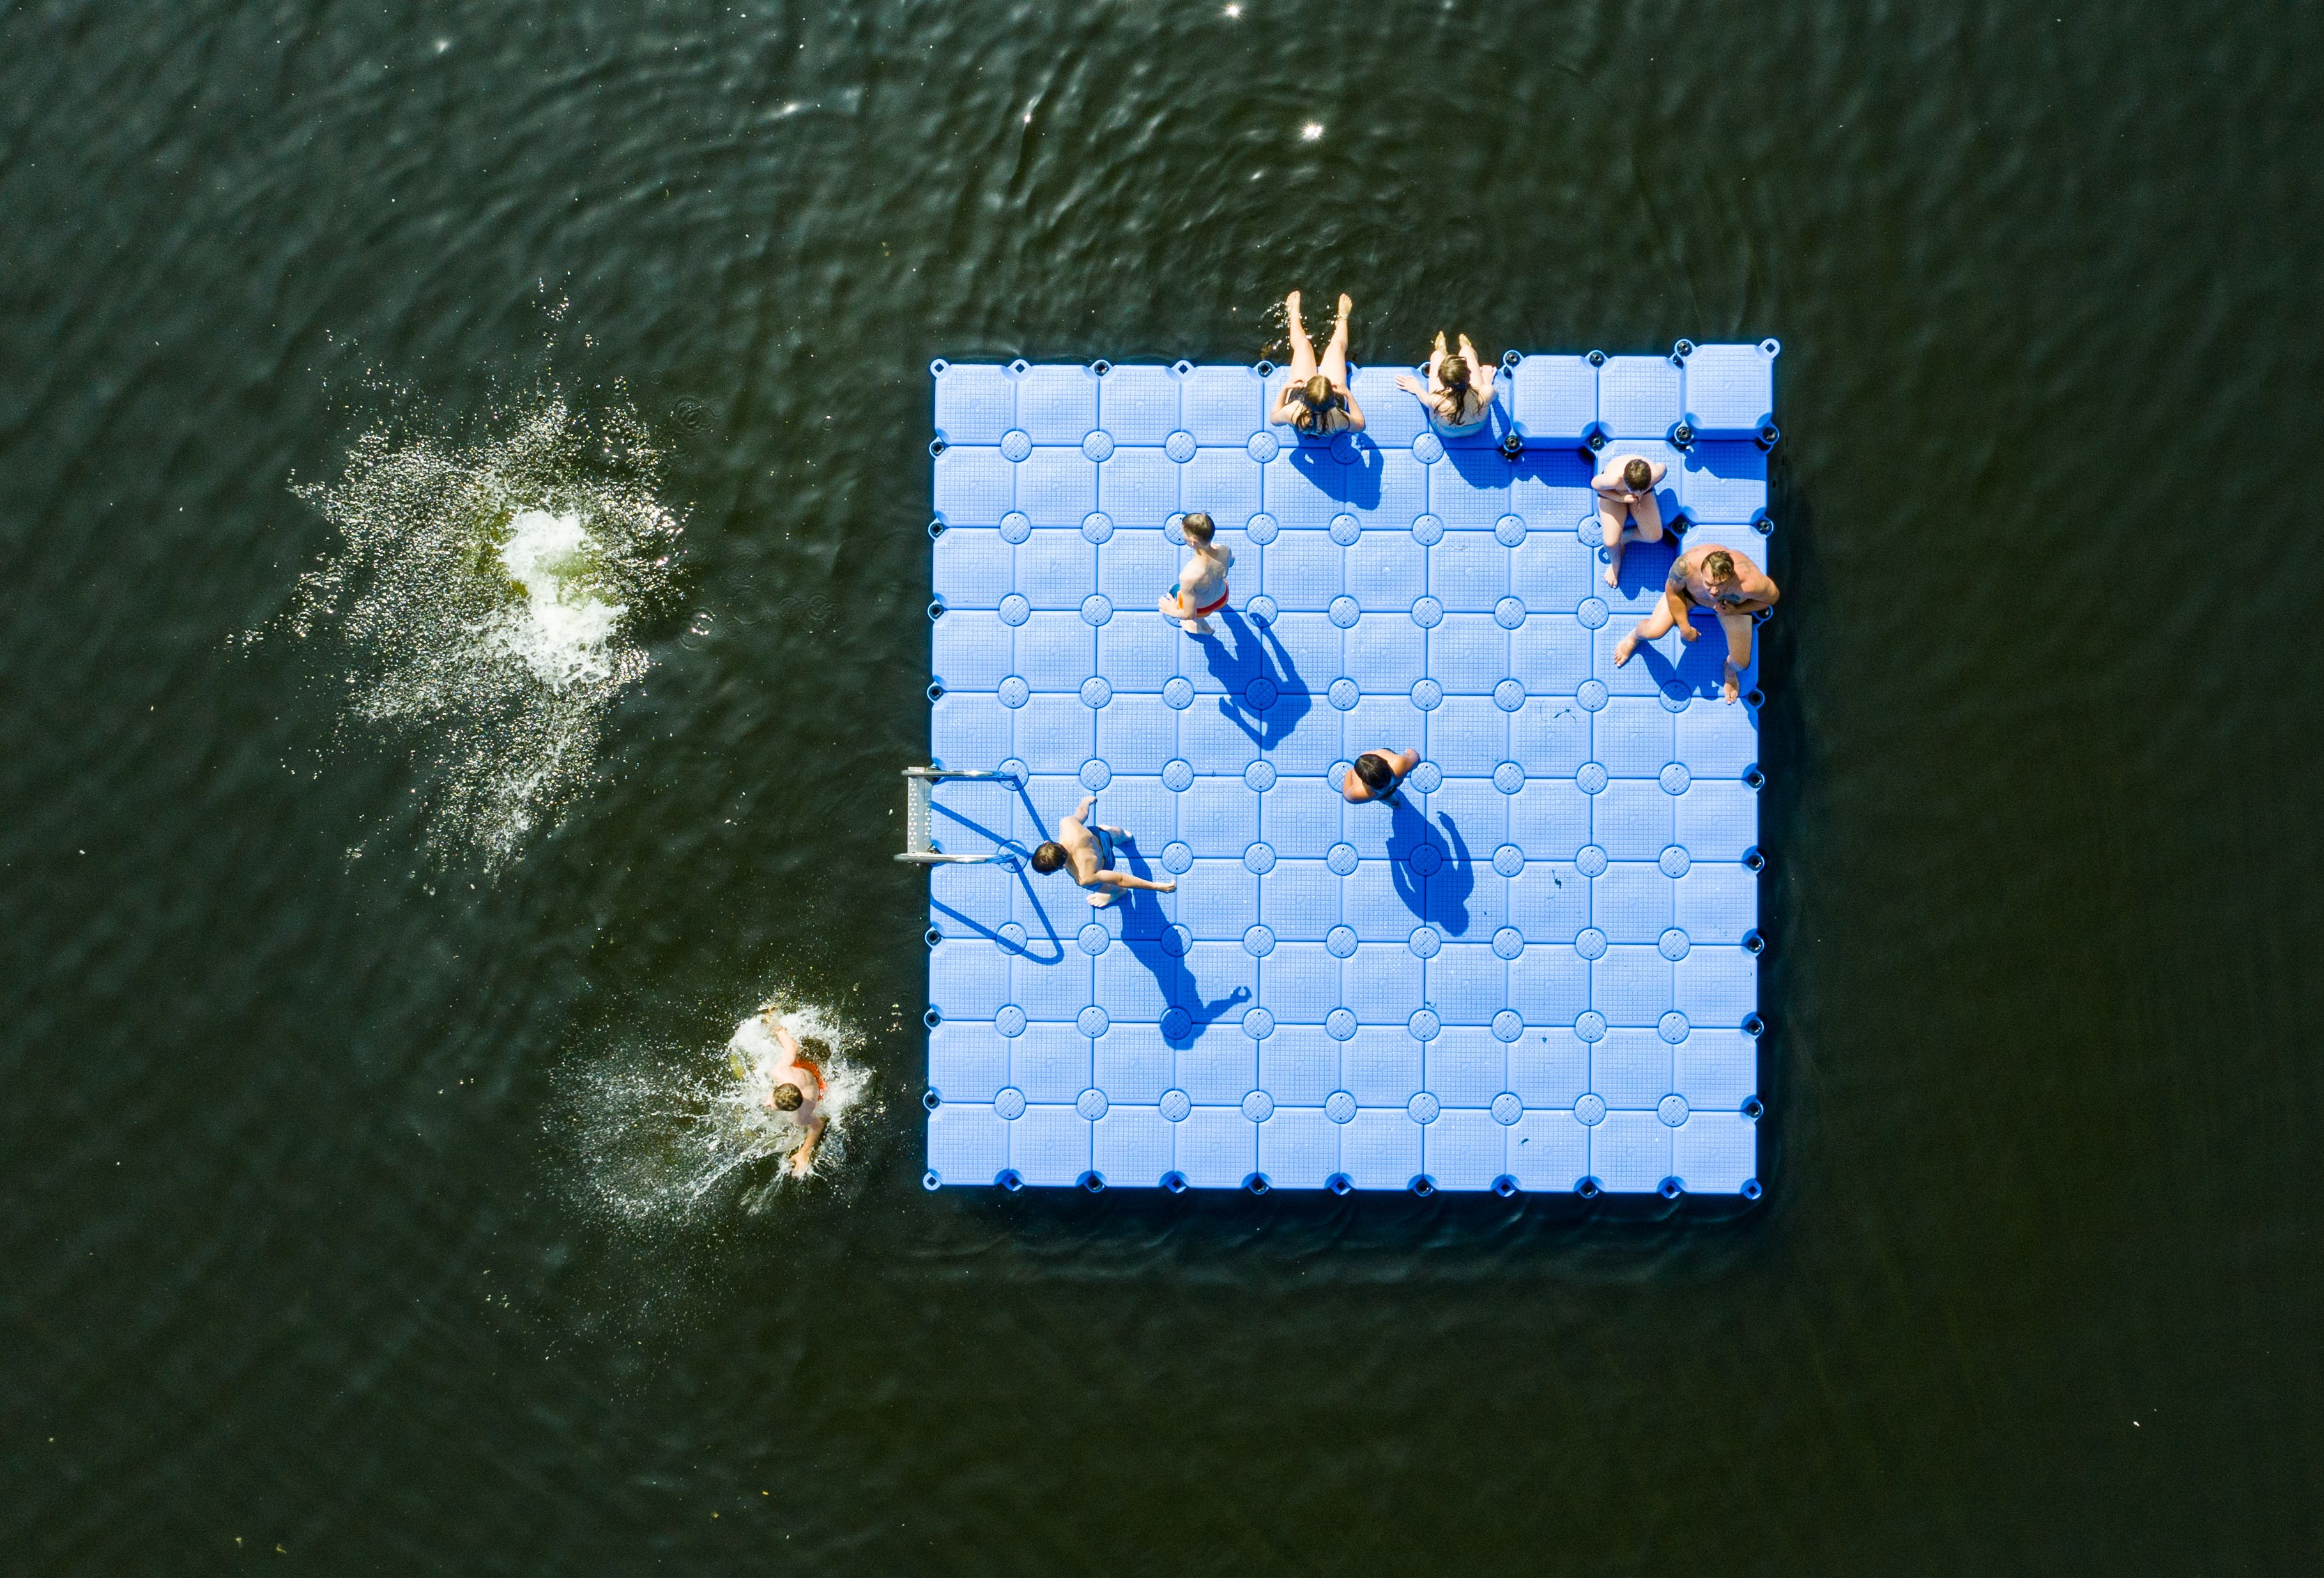 Swimmers sunbathe on a float on the Altwarmbuechener See lake in Hanover, northern Germany, where temperatures were predicted to reach 39 Celsius (102 degrees Fahrenheit). (Christophe Gateau/DPA/AFP)